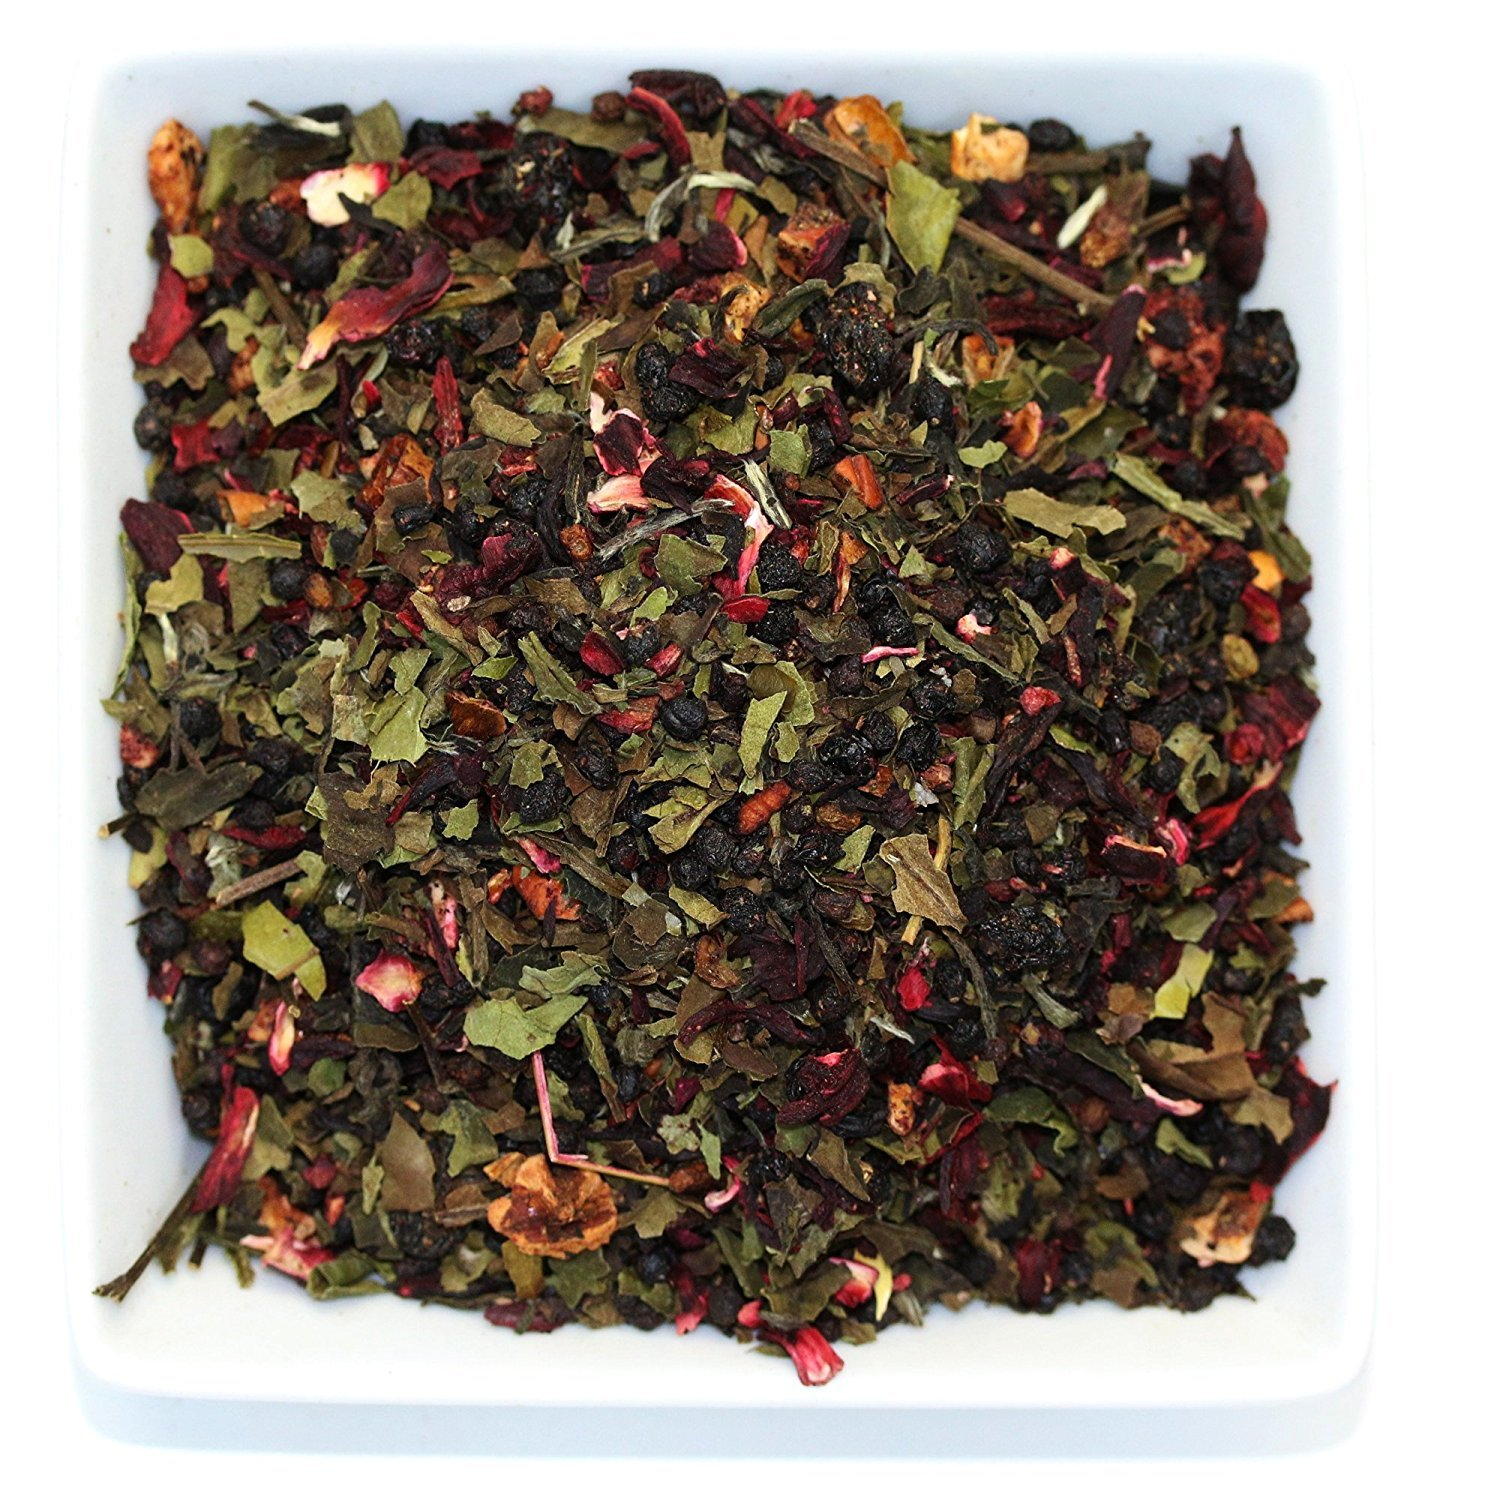 Tealyra - White Garden Bouquet - Fruity White Loose Leaf Tea Blend - Hibiscus - Strawberry - Raspberry - Antioxidants and Vitamines Rich - All Natural Ingredients - 110g (4-ounce) by Tealyra (Image #1)